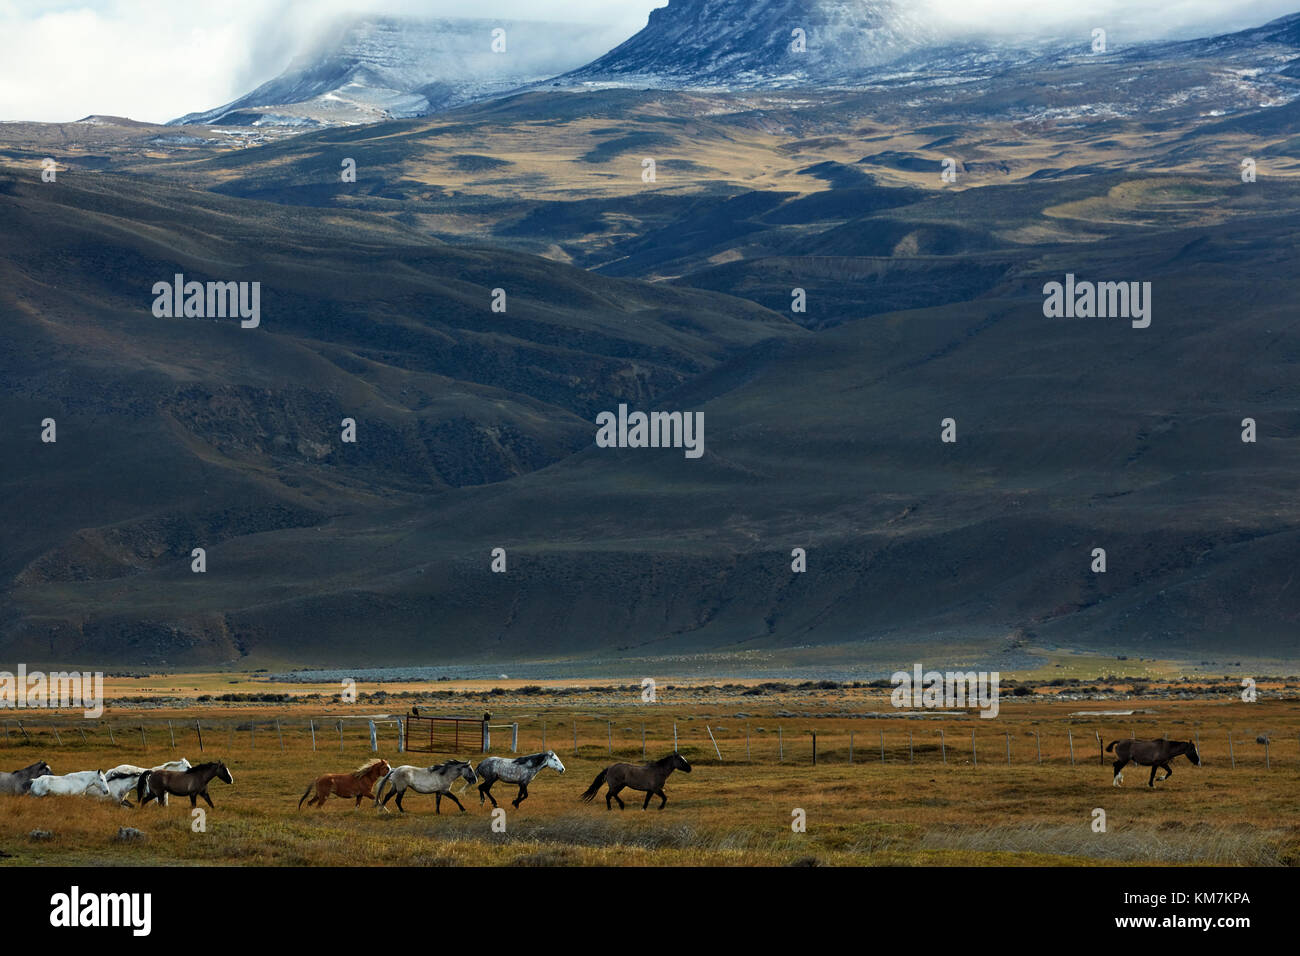 Horses and farmland near El Chalten, Patagonia, Argentina, South America - Stock Image